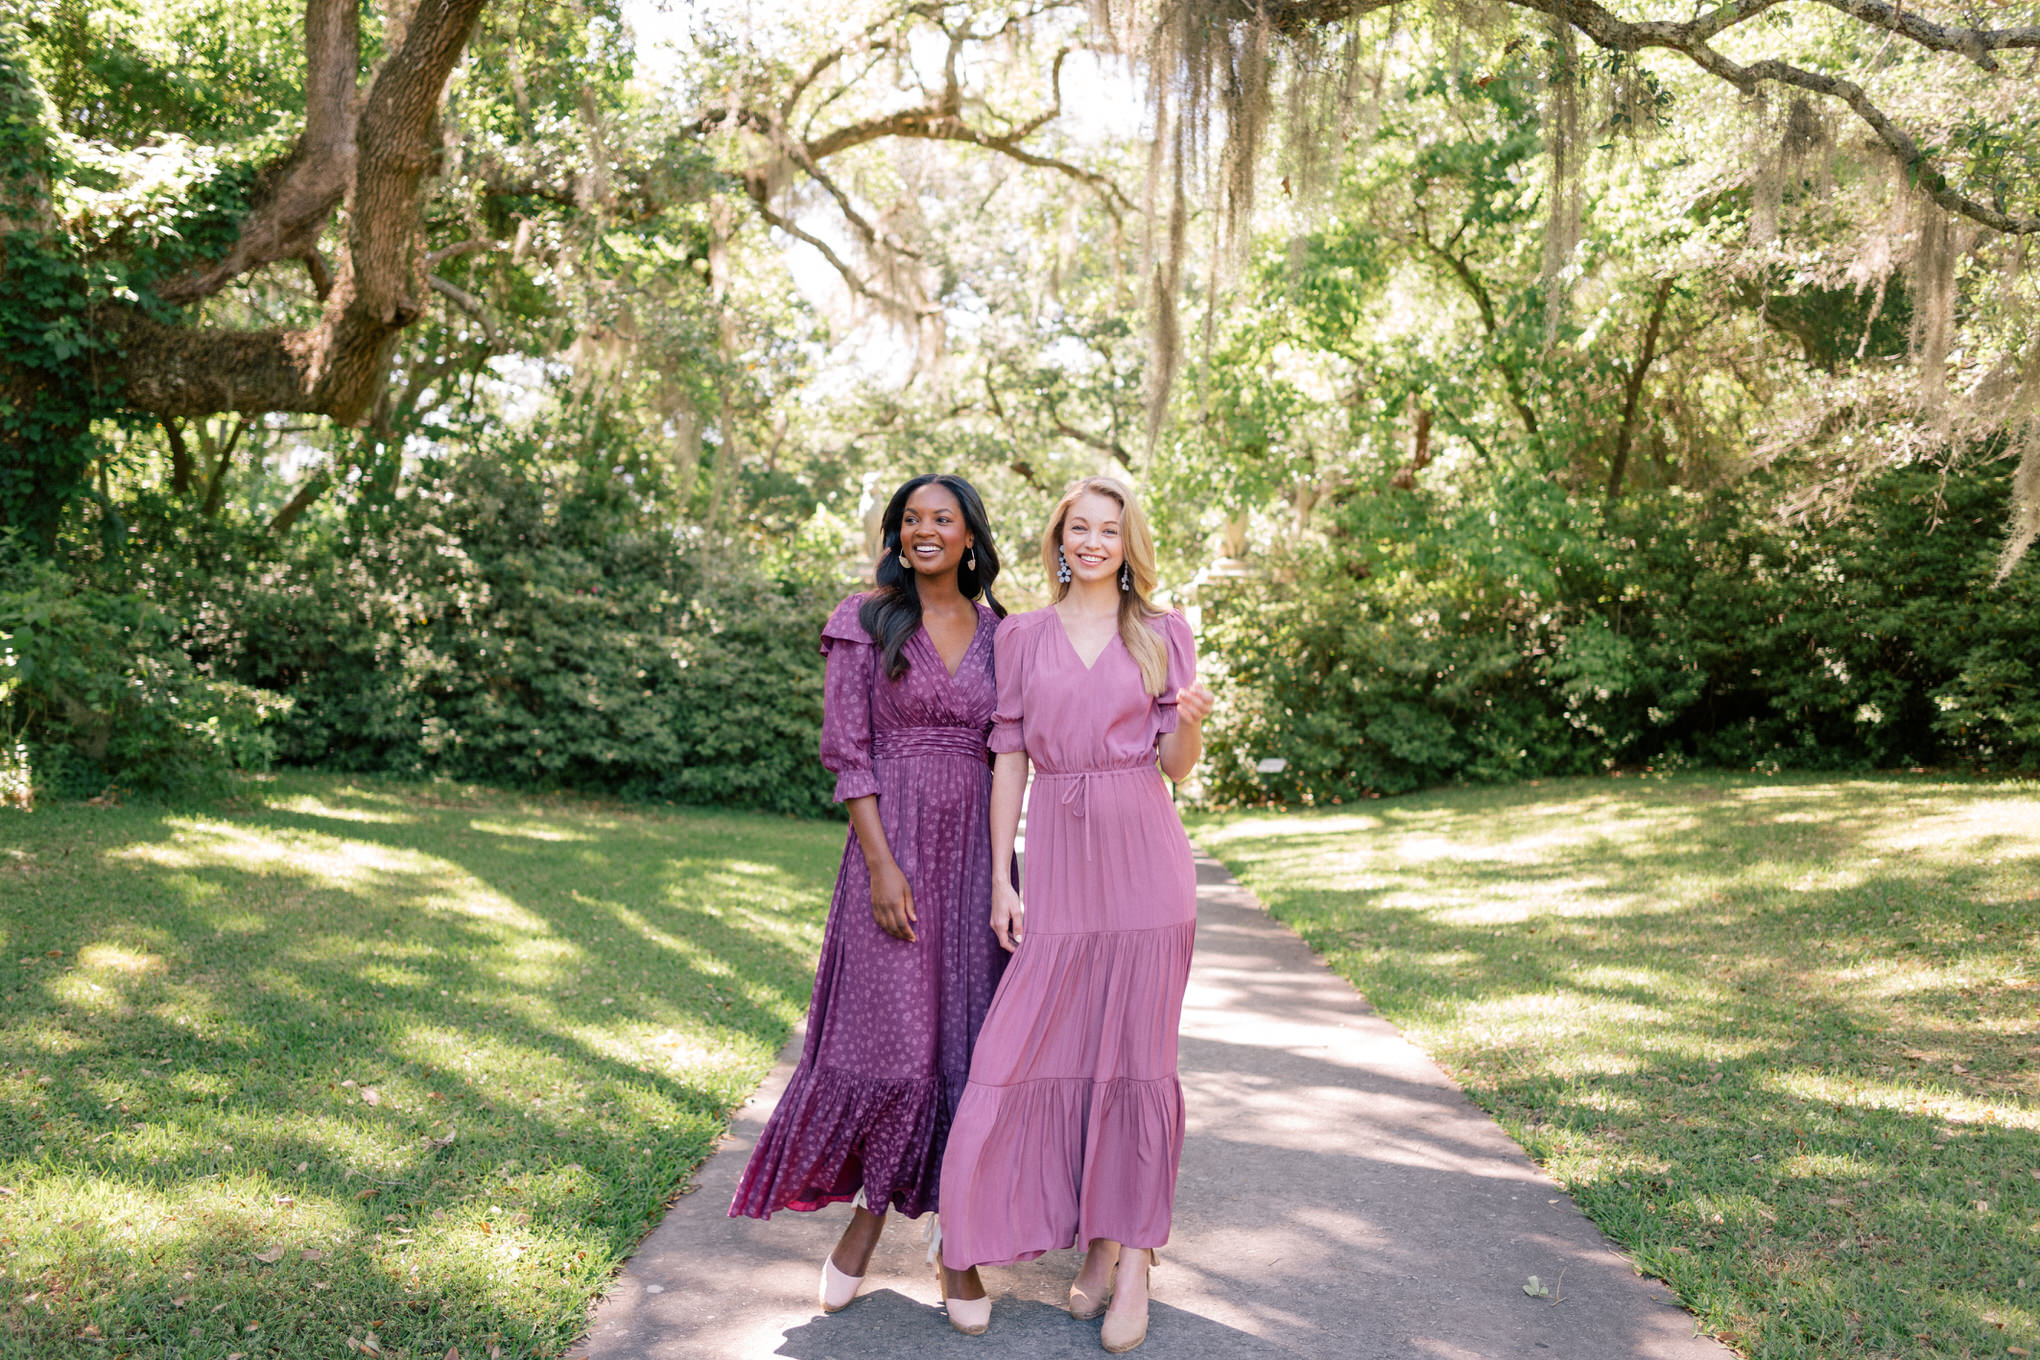 Gal Meets Glam - A Charleston Based Style and Beauty Blog by Julia Engel